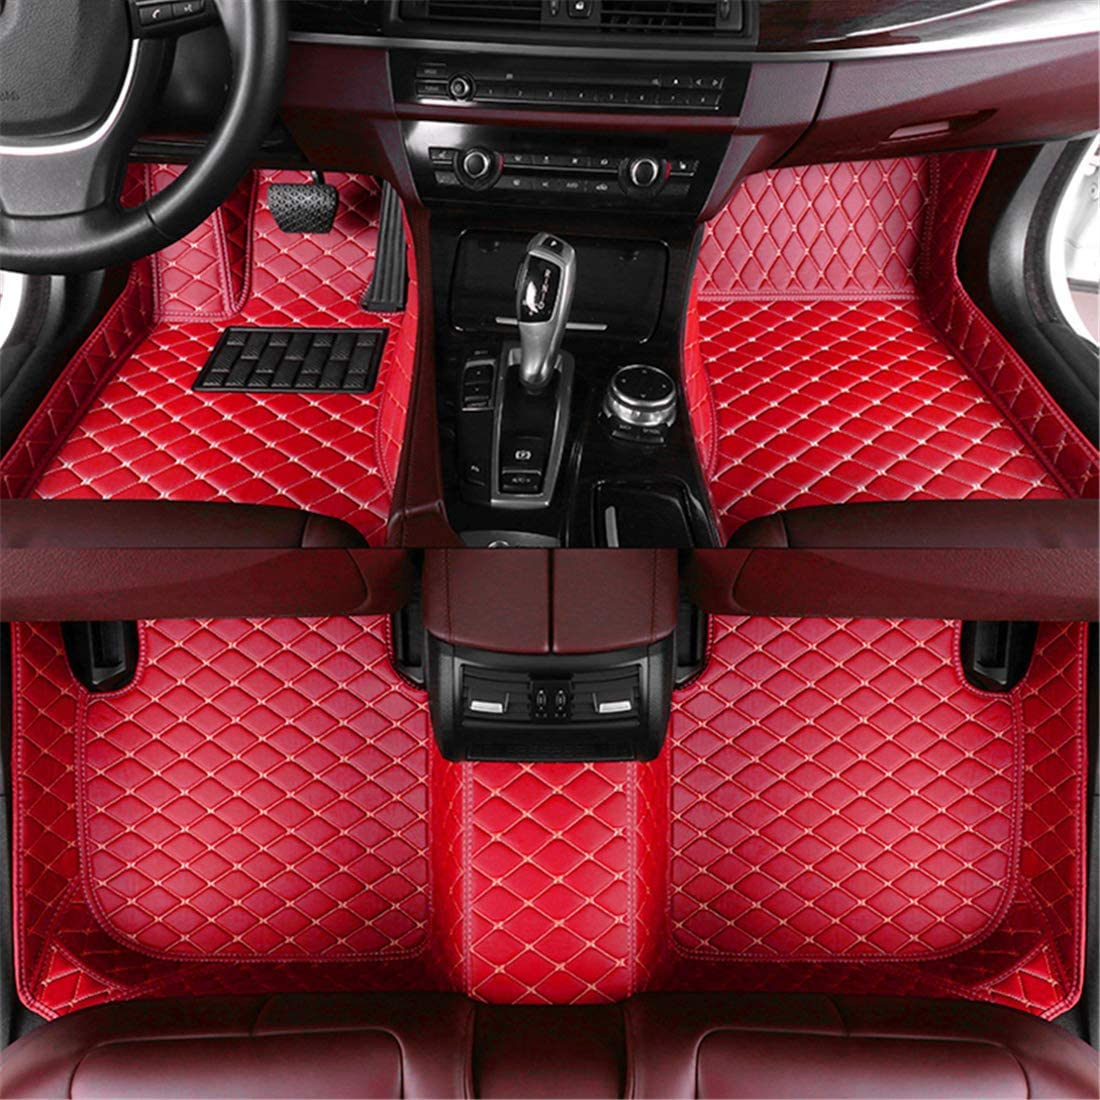 Muchkey car Floor Mats fit for Nissan Rogue 2014-2019 Full Coverage All Weather Protection Non-Slip Leather Floor Liners red